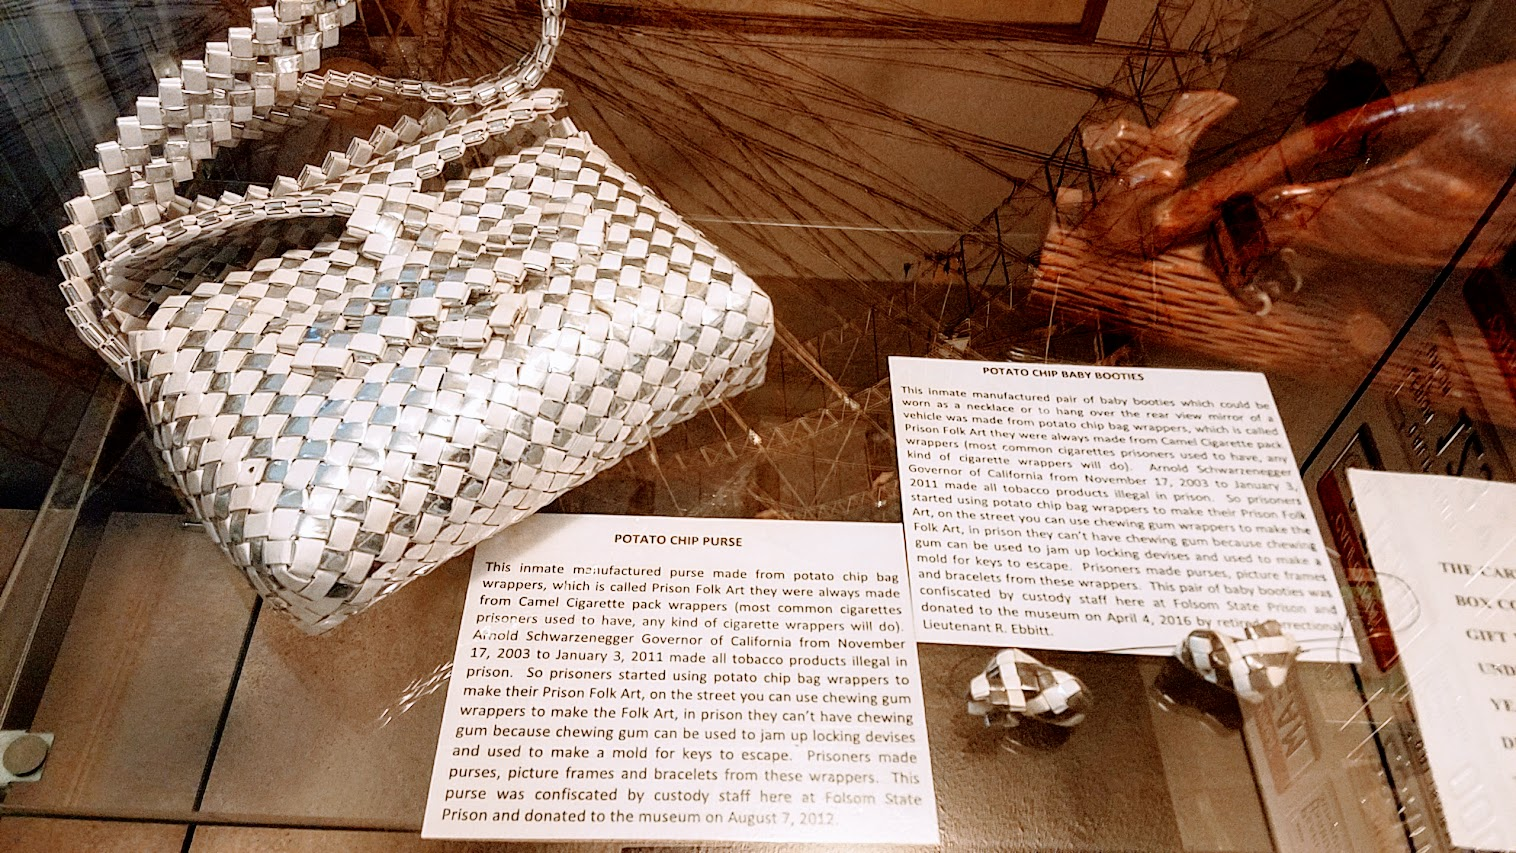 Creativity blooms with limited supplies but lots of time by the various prisoners at Folsom Prison - on display when visiting Folsom Prison Museum. This is a potato chip purse and potato chip baby boots, Prison Folk Art used to be made with cigarette pack wrappers but when tobacco products became illegal in prison, and since gum wrappers are also illegal since they can jam up locks or be used as molds, prisoners started using potato chip bags. Other objects made include picture frames and bracelets. width=